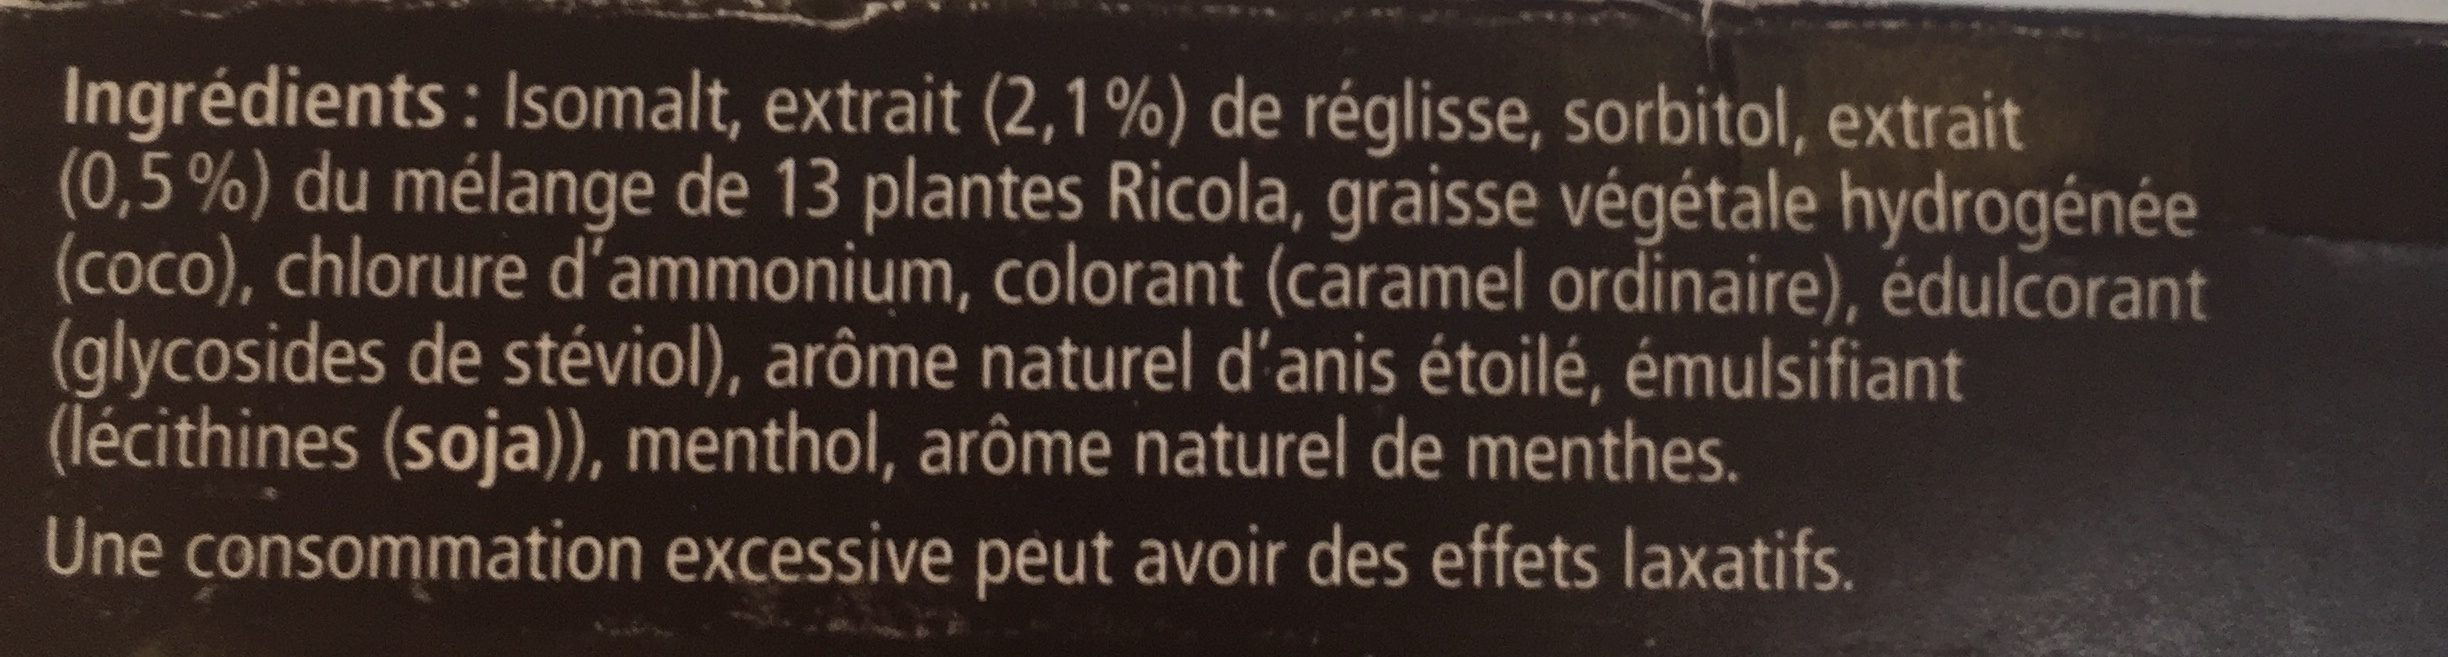 Ricola Zoethout SV In Box 50G - Ingrédients - fr